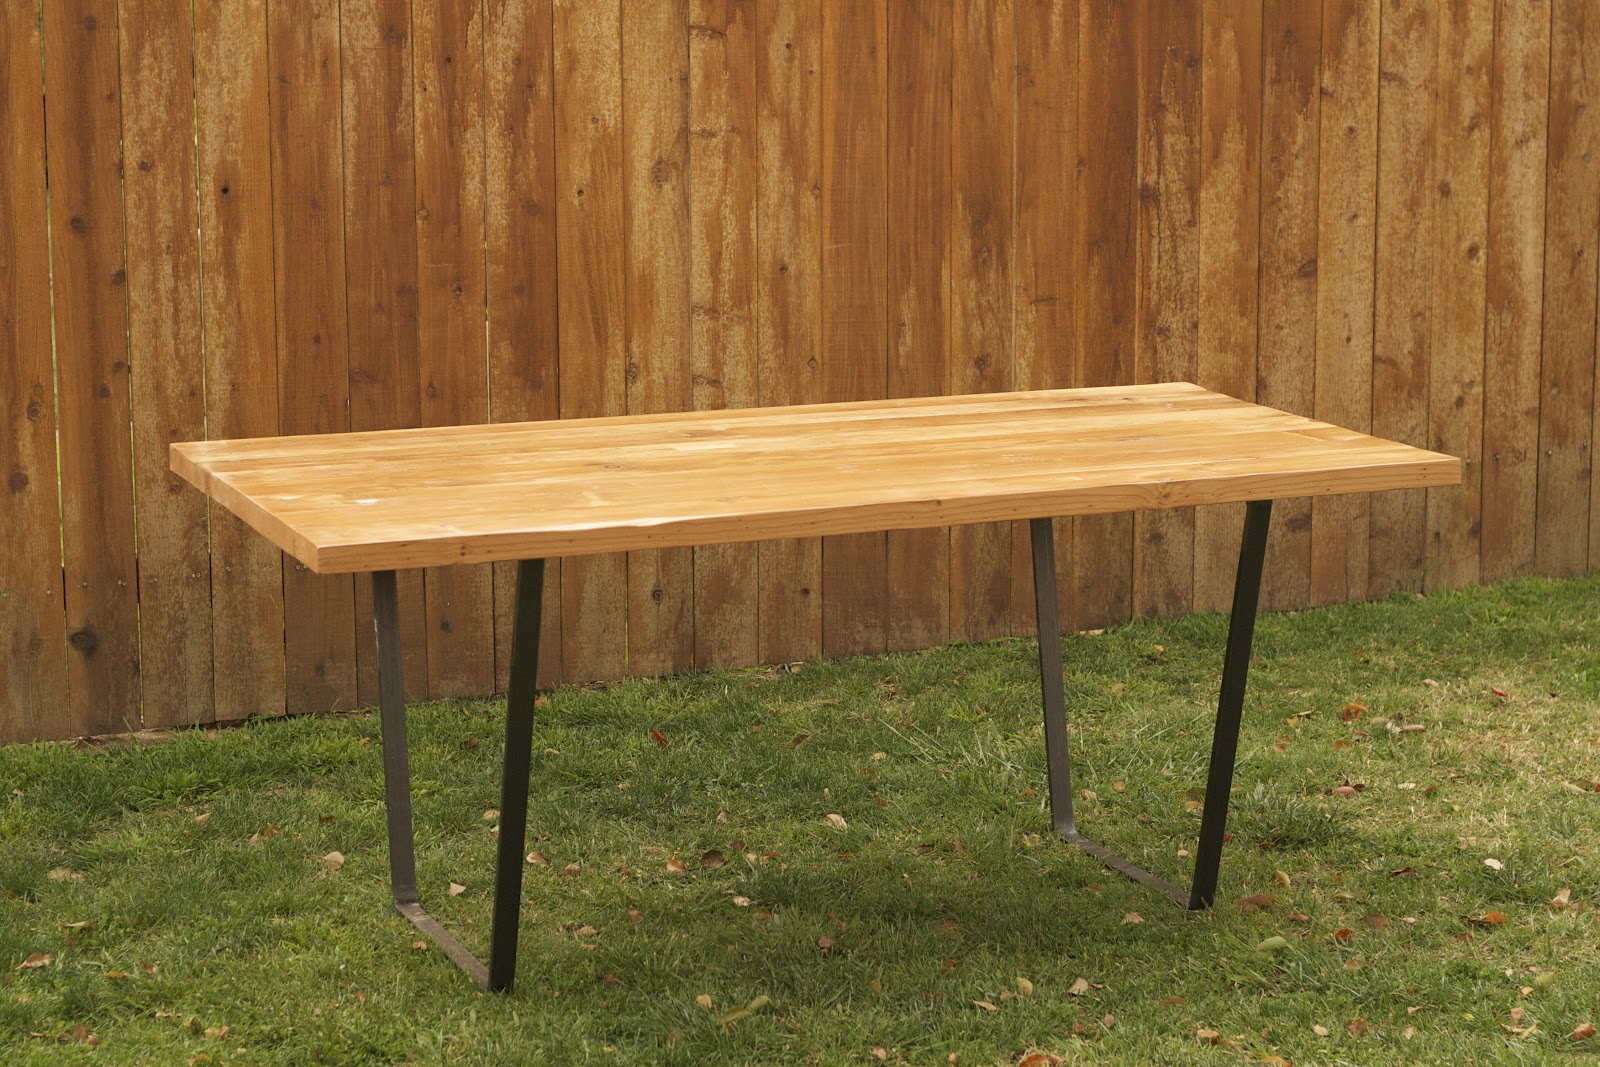 Superb img of Arbor Exchange Reclaimed Wood Furniture: Dining Table w/ Metal Legs with #BE7A0D color and 1600x1067 pixels